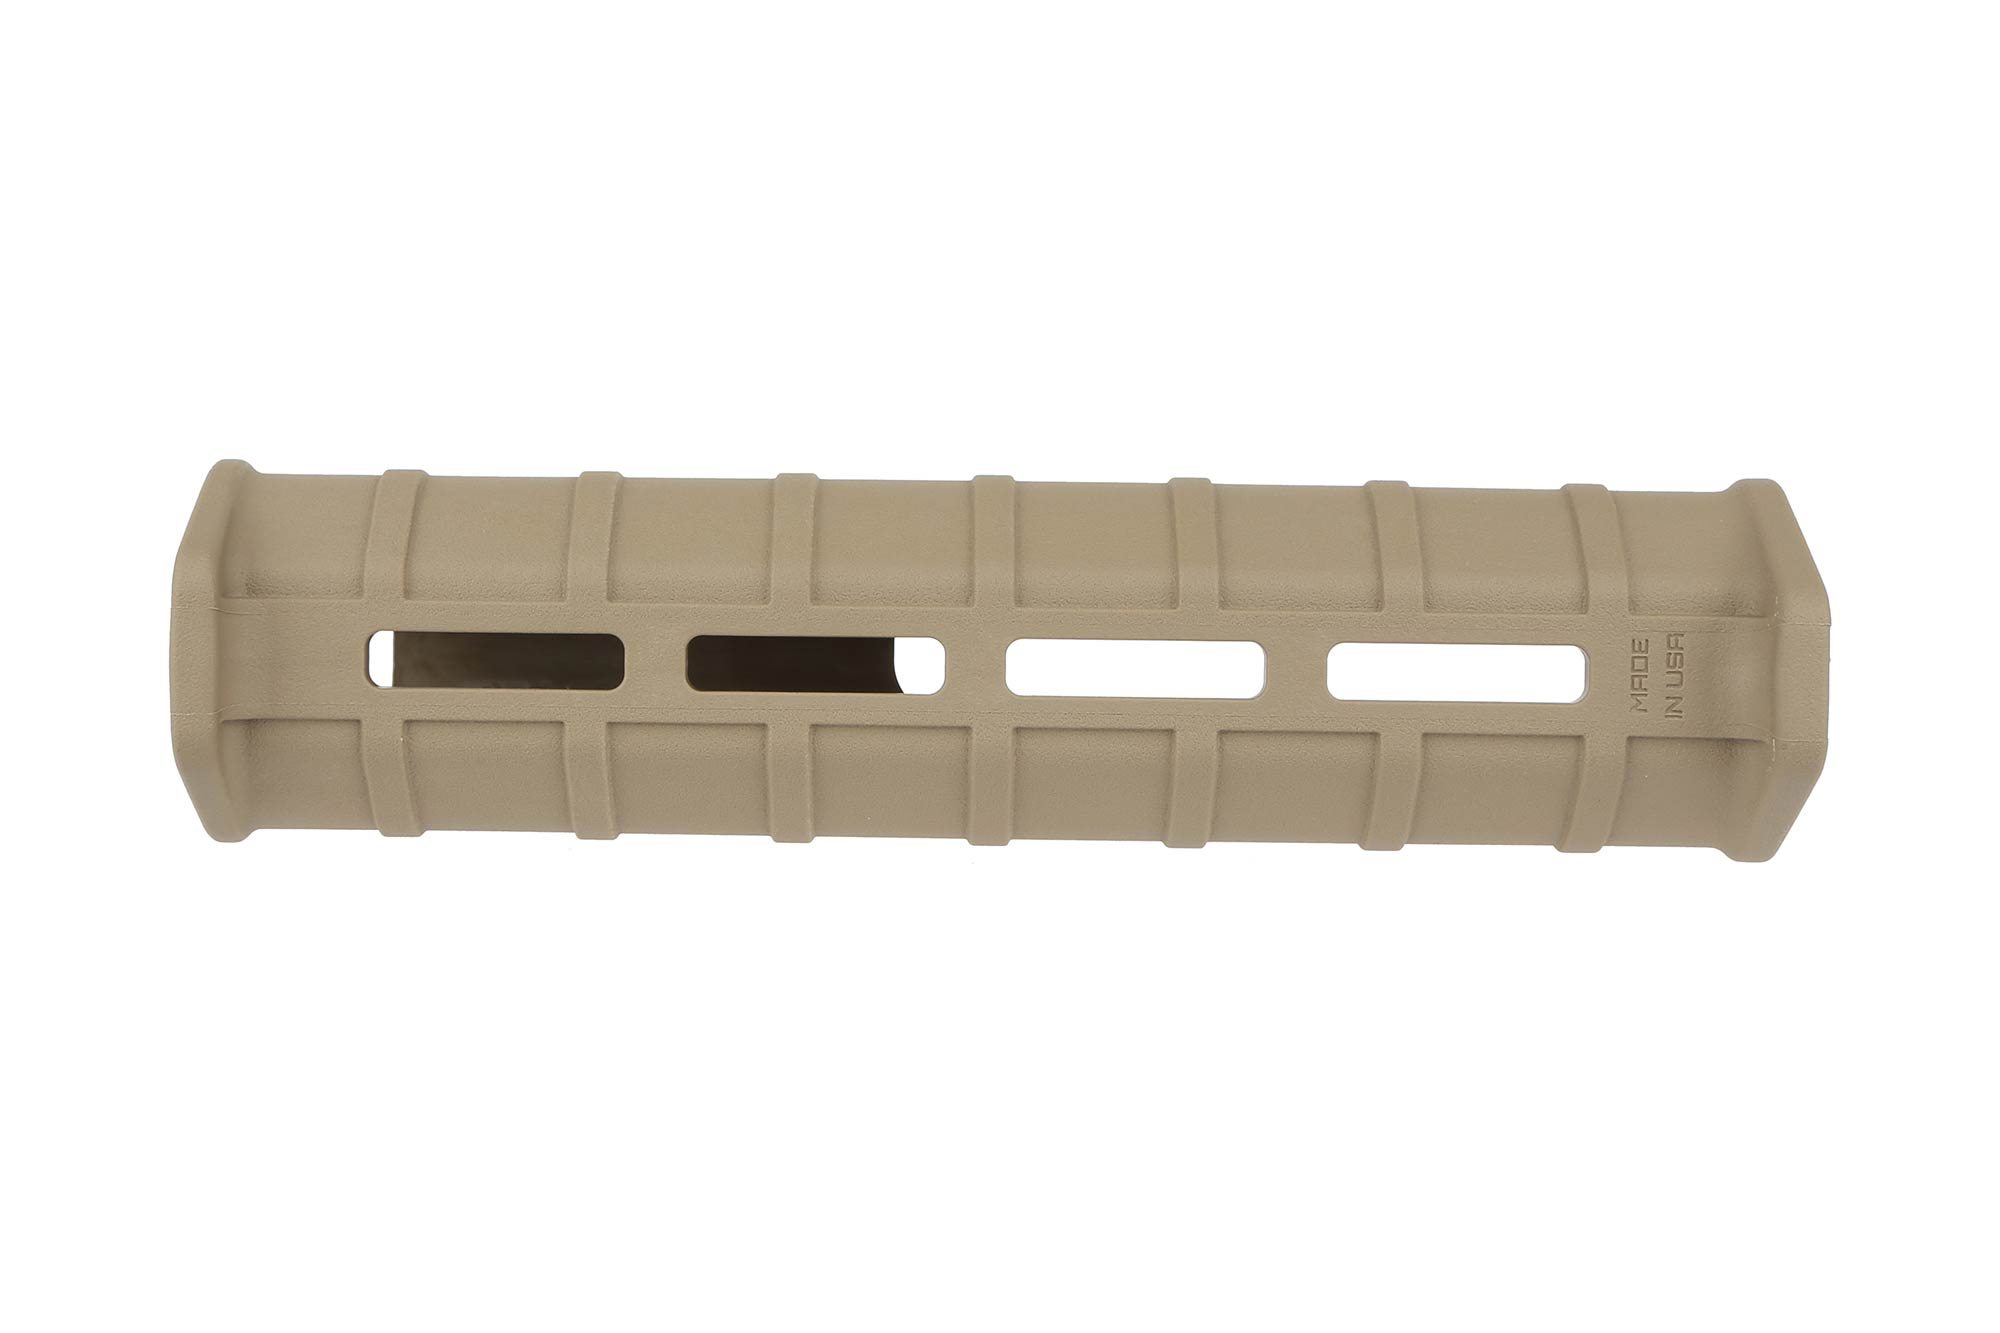 The Magpul Mossberg 590 MOE forend flat dark earth has front and rear hand stops